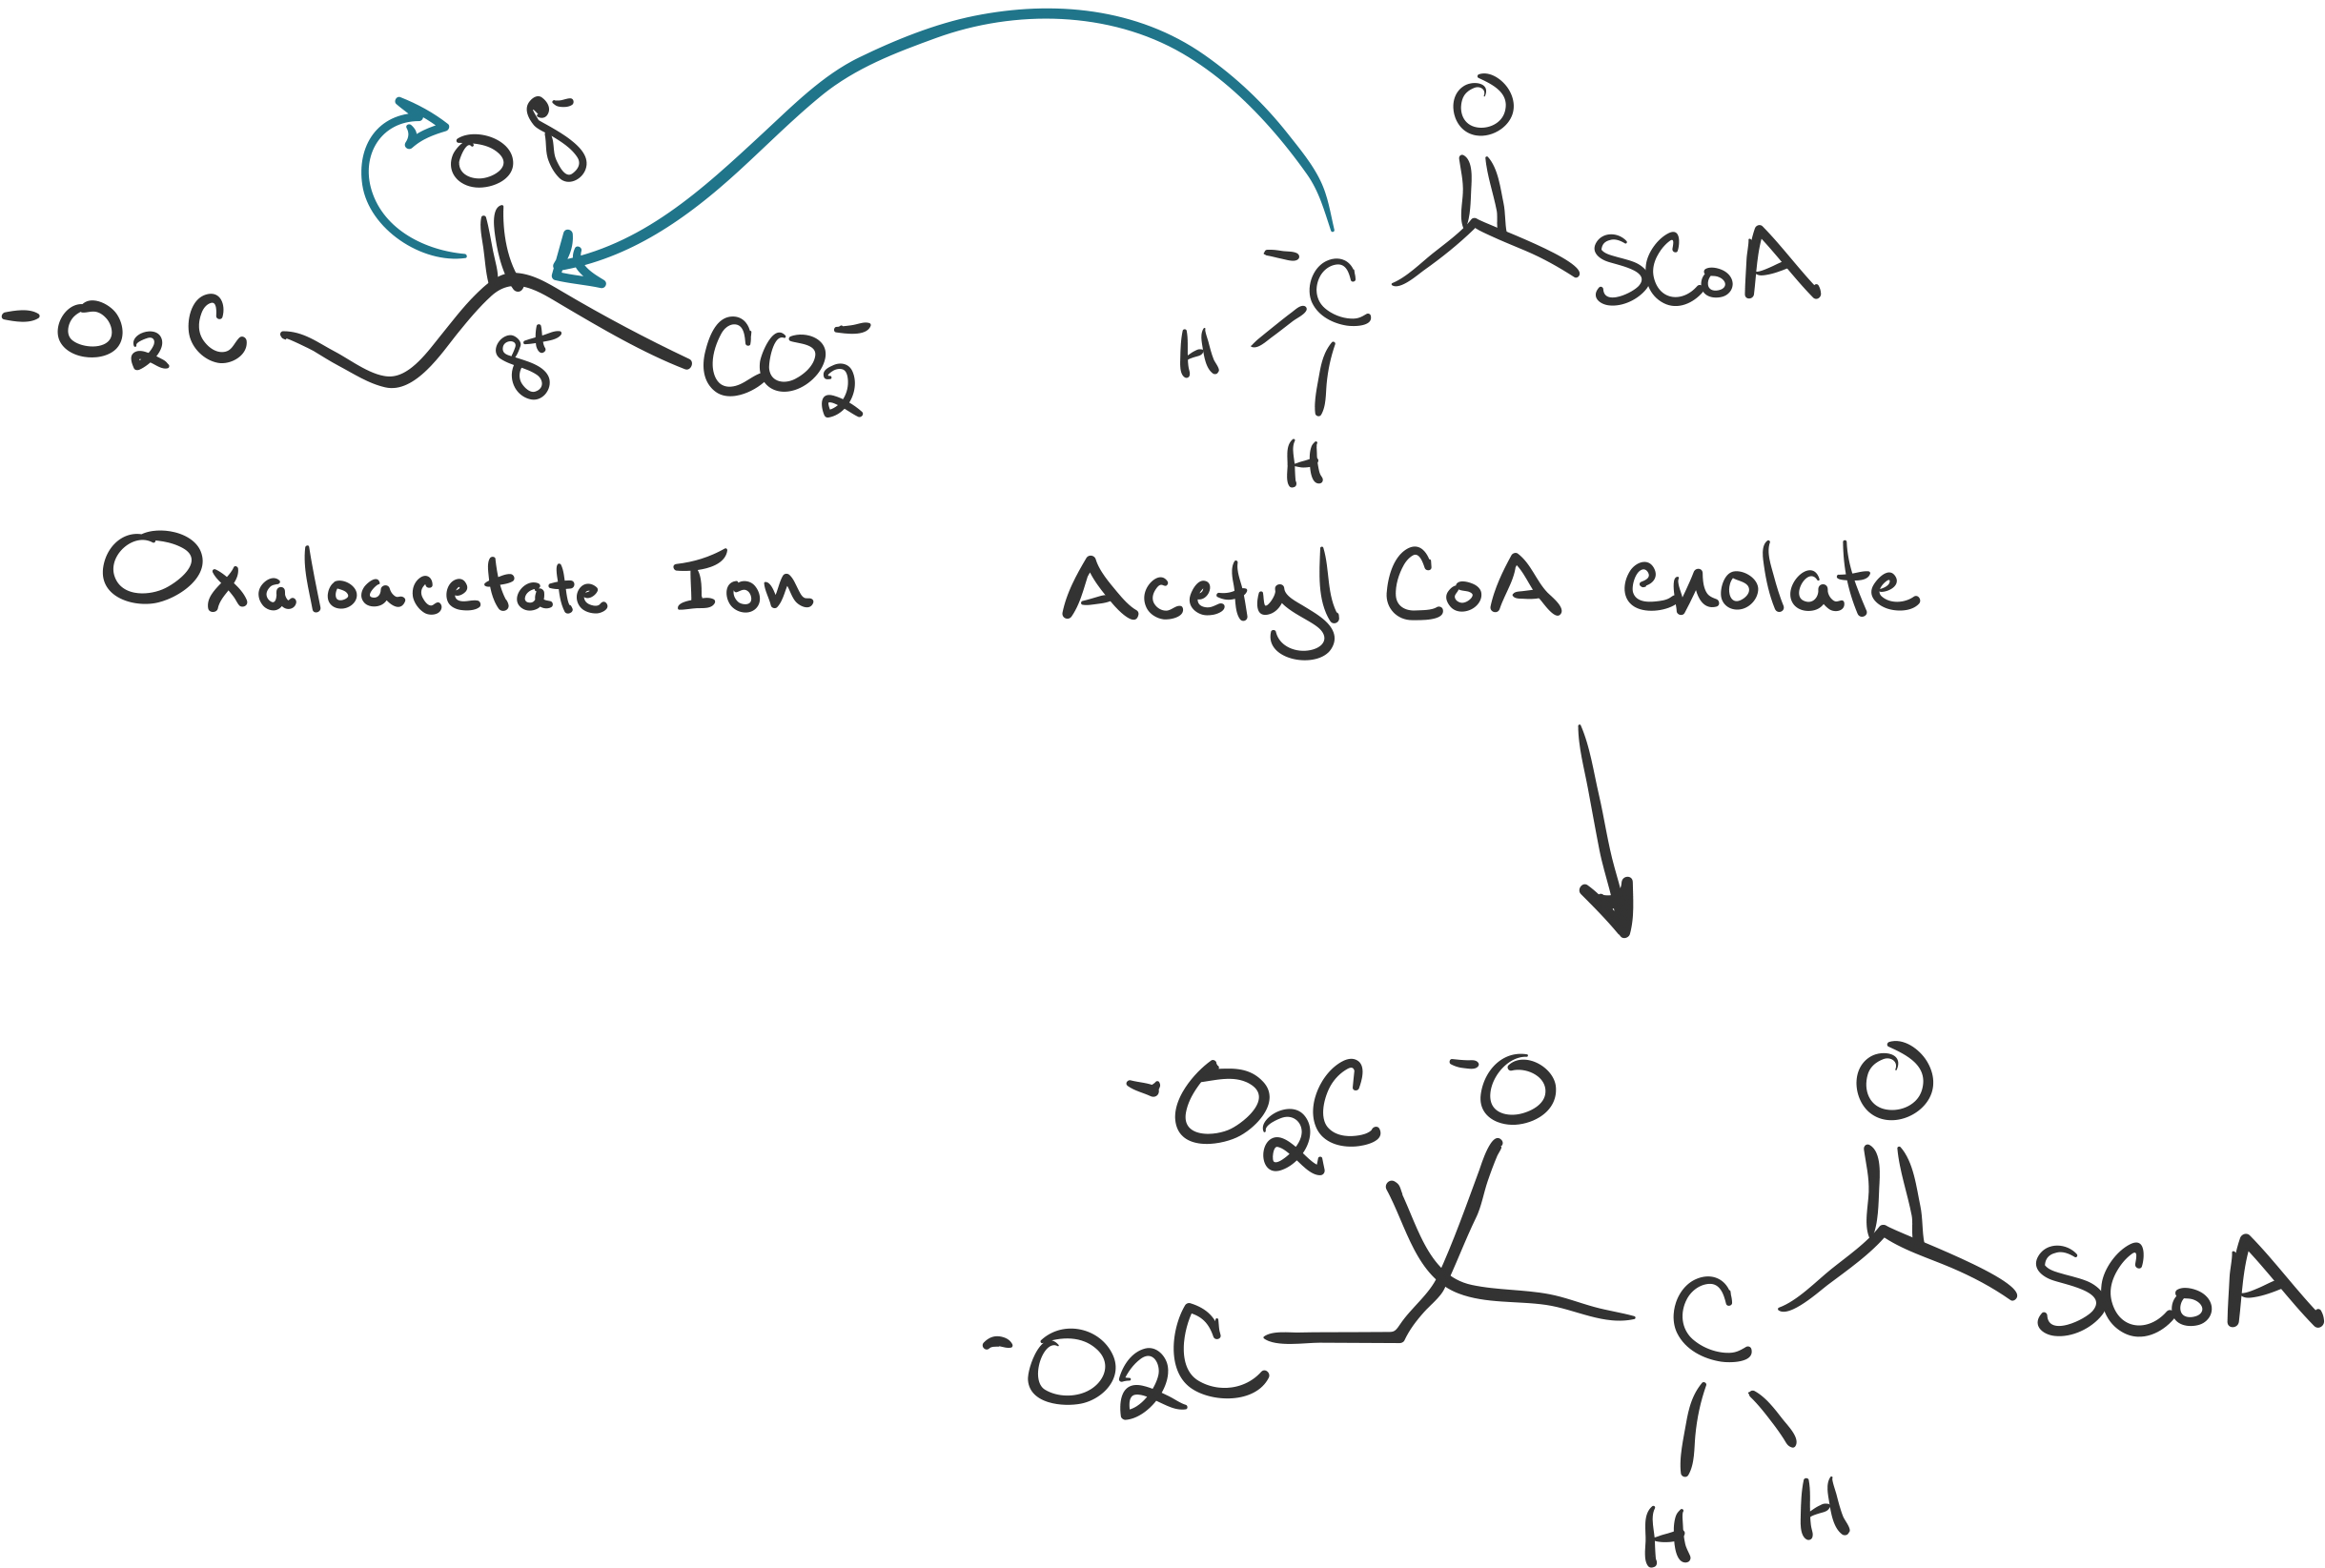 The enolate attacks the electrophilic carbonyl carbon of oxaloacetate ion.